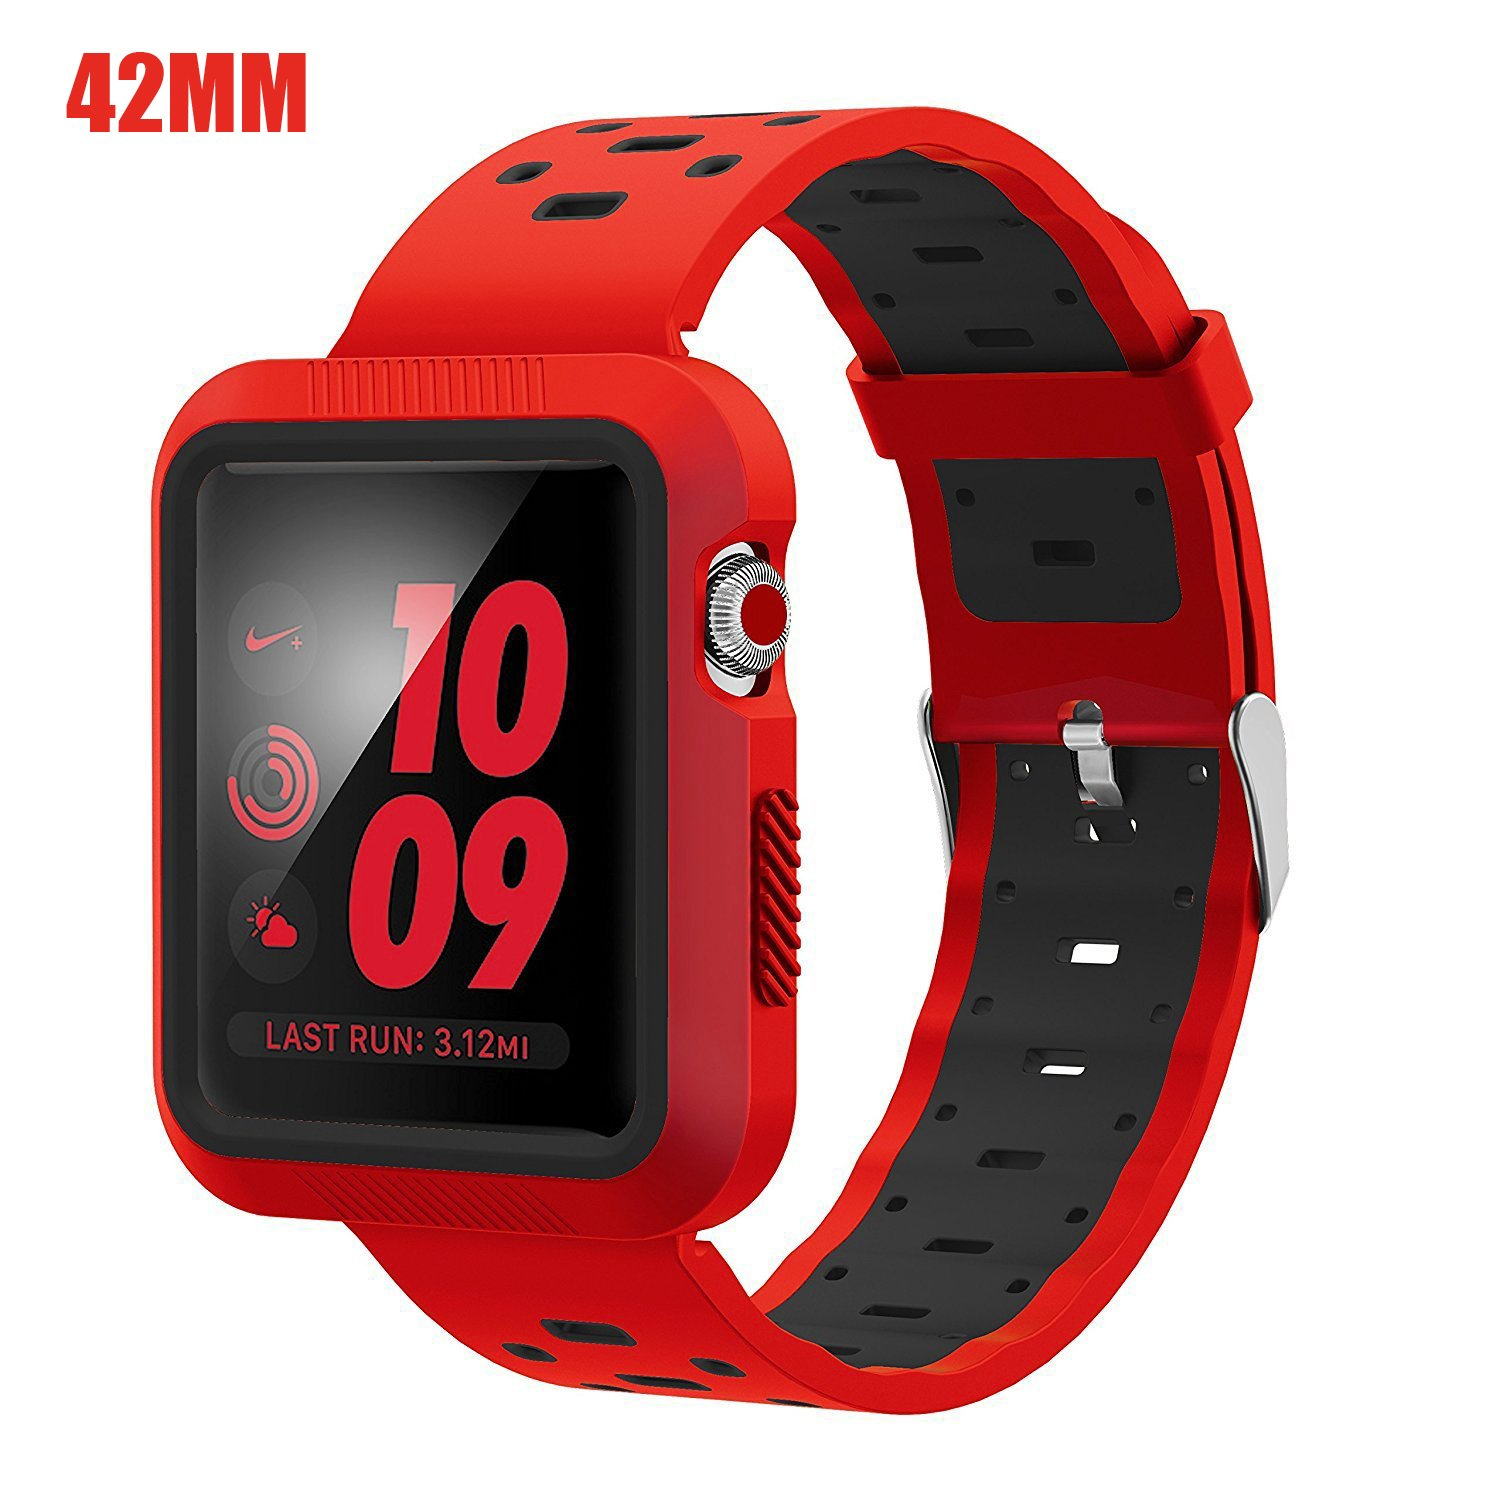 EloBeth Compatible with Apple Watch Bands 42mm Sport Silicone Band with Protector Bumper iWatch Series 1 2 3 Replacement Band (42mm Red & Black) by EloBeth